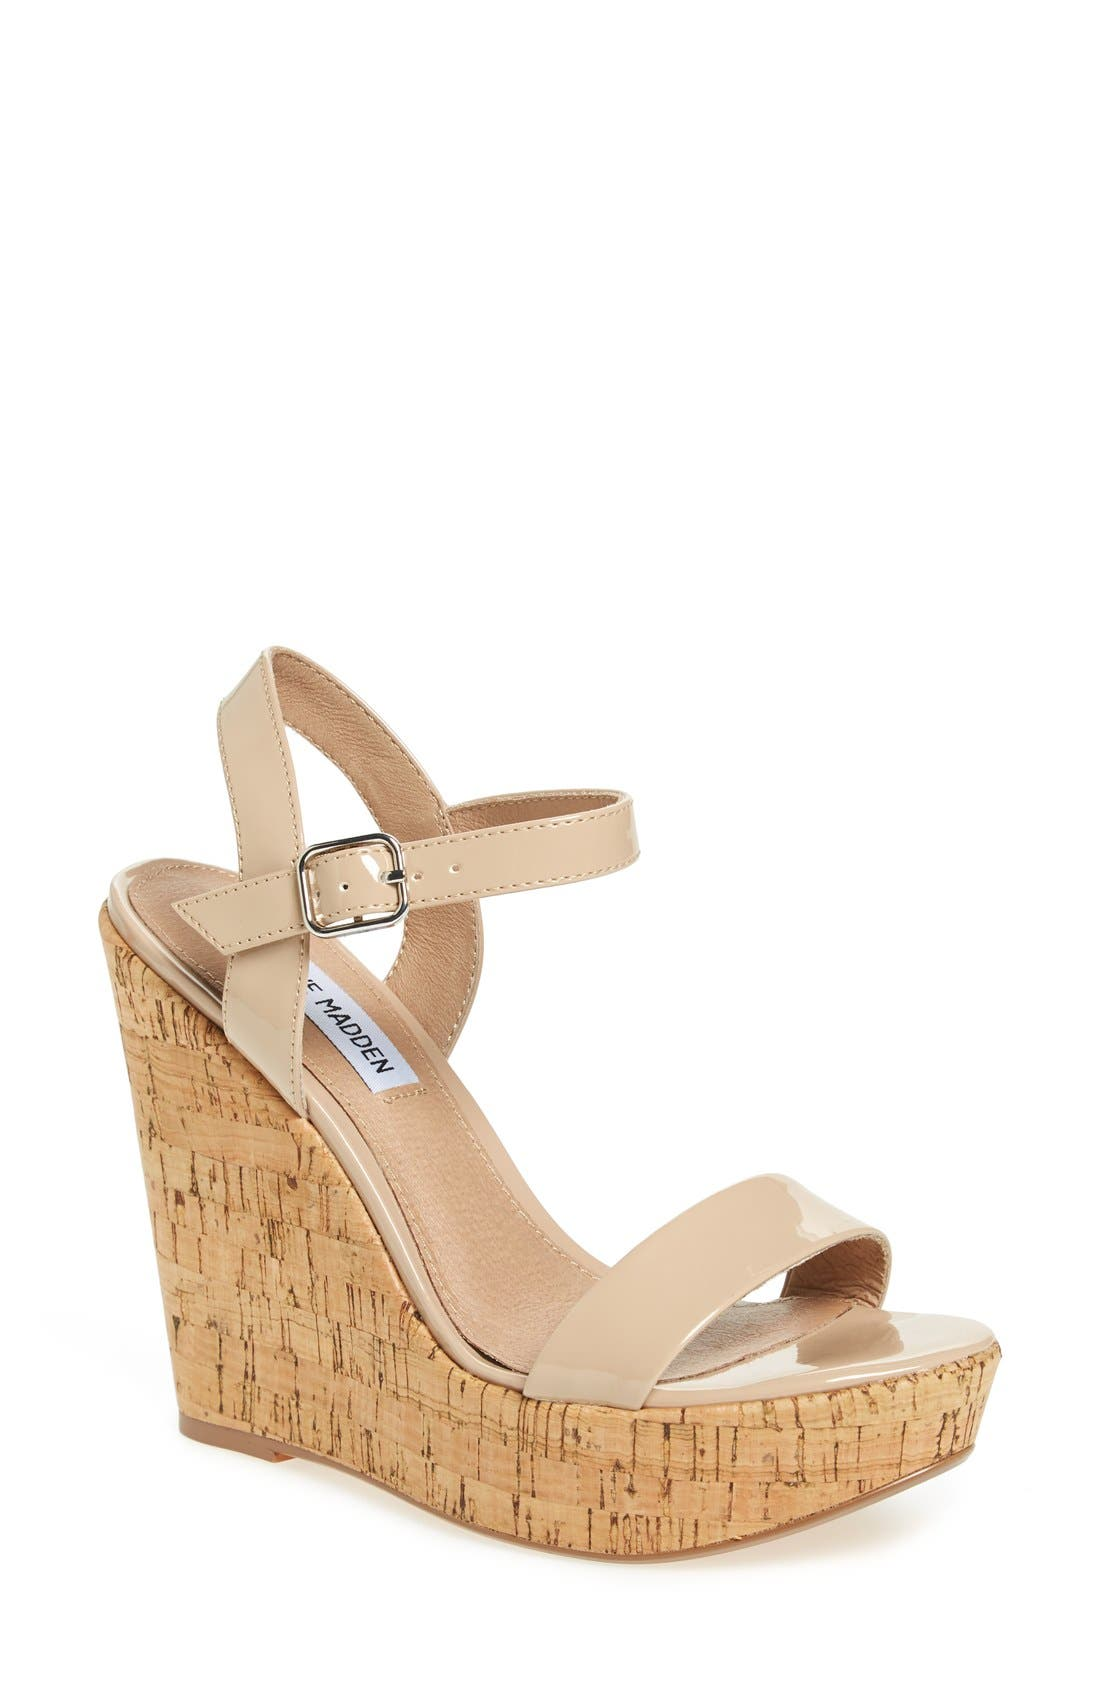 Alternate Image 1 Selected - Steve Madden 'Ellina' Wedge Sandal (Women)